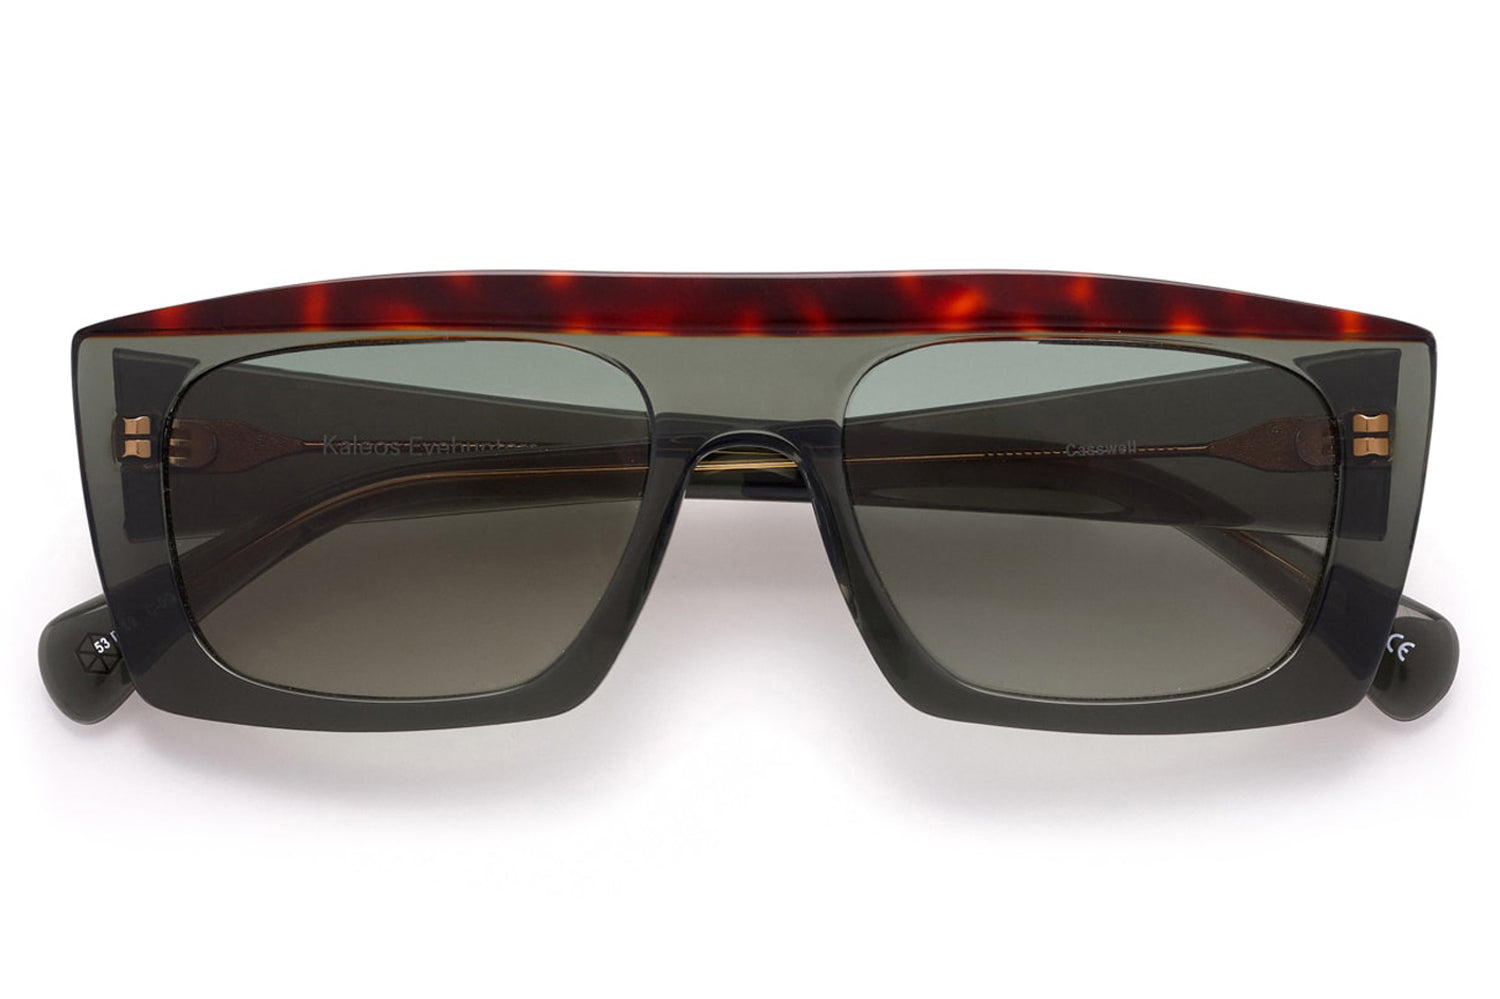 Kaleos Eyehunters - Casswell Sunglasses Transparent Olive